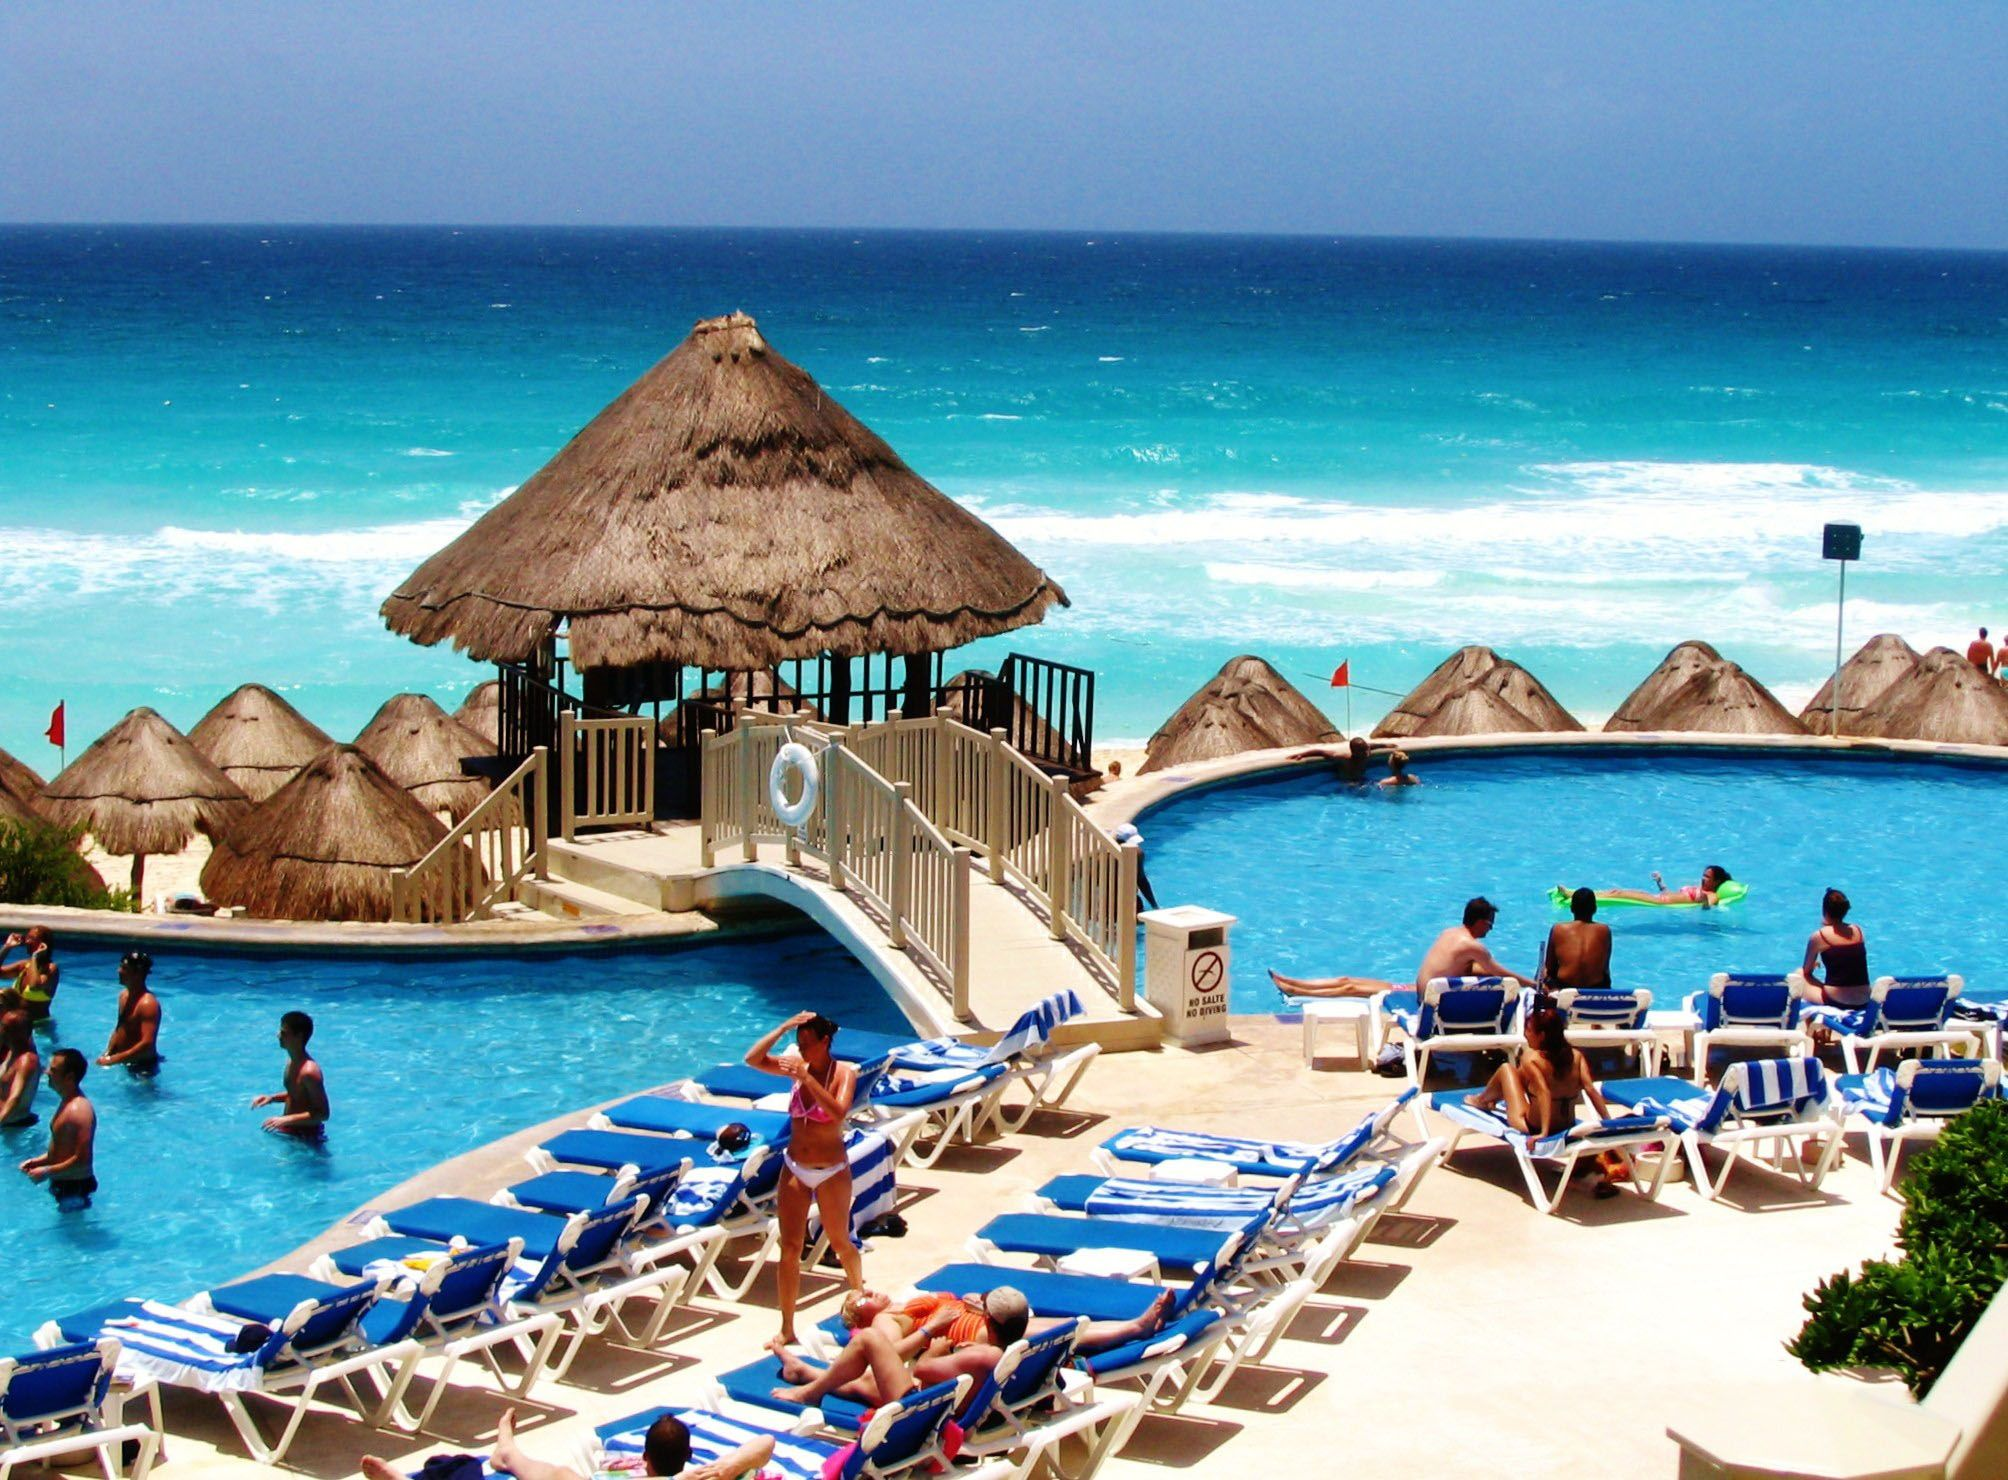 Hotel sandos cancun luxury experience resort marf travel vacation - Save 40 On Cancun All Inclusive Hotels Http Www Jetsetz